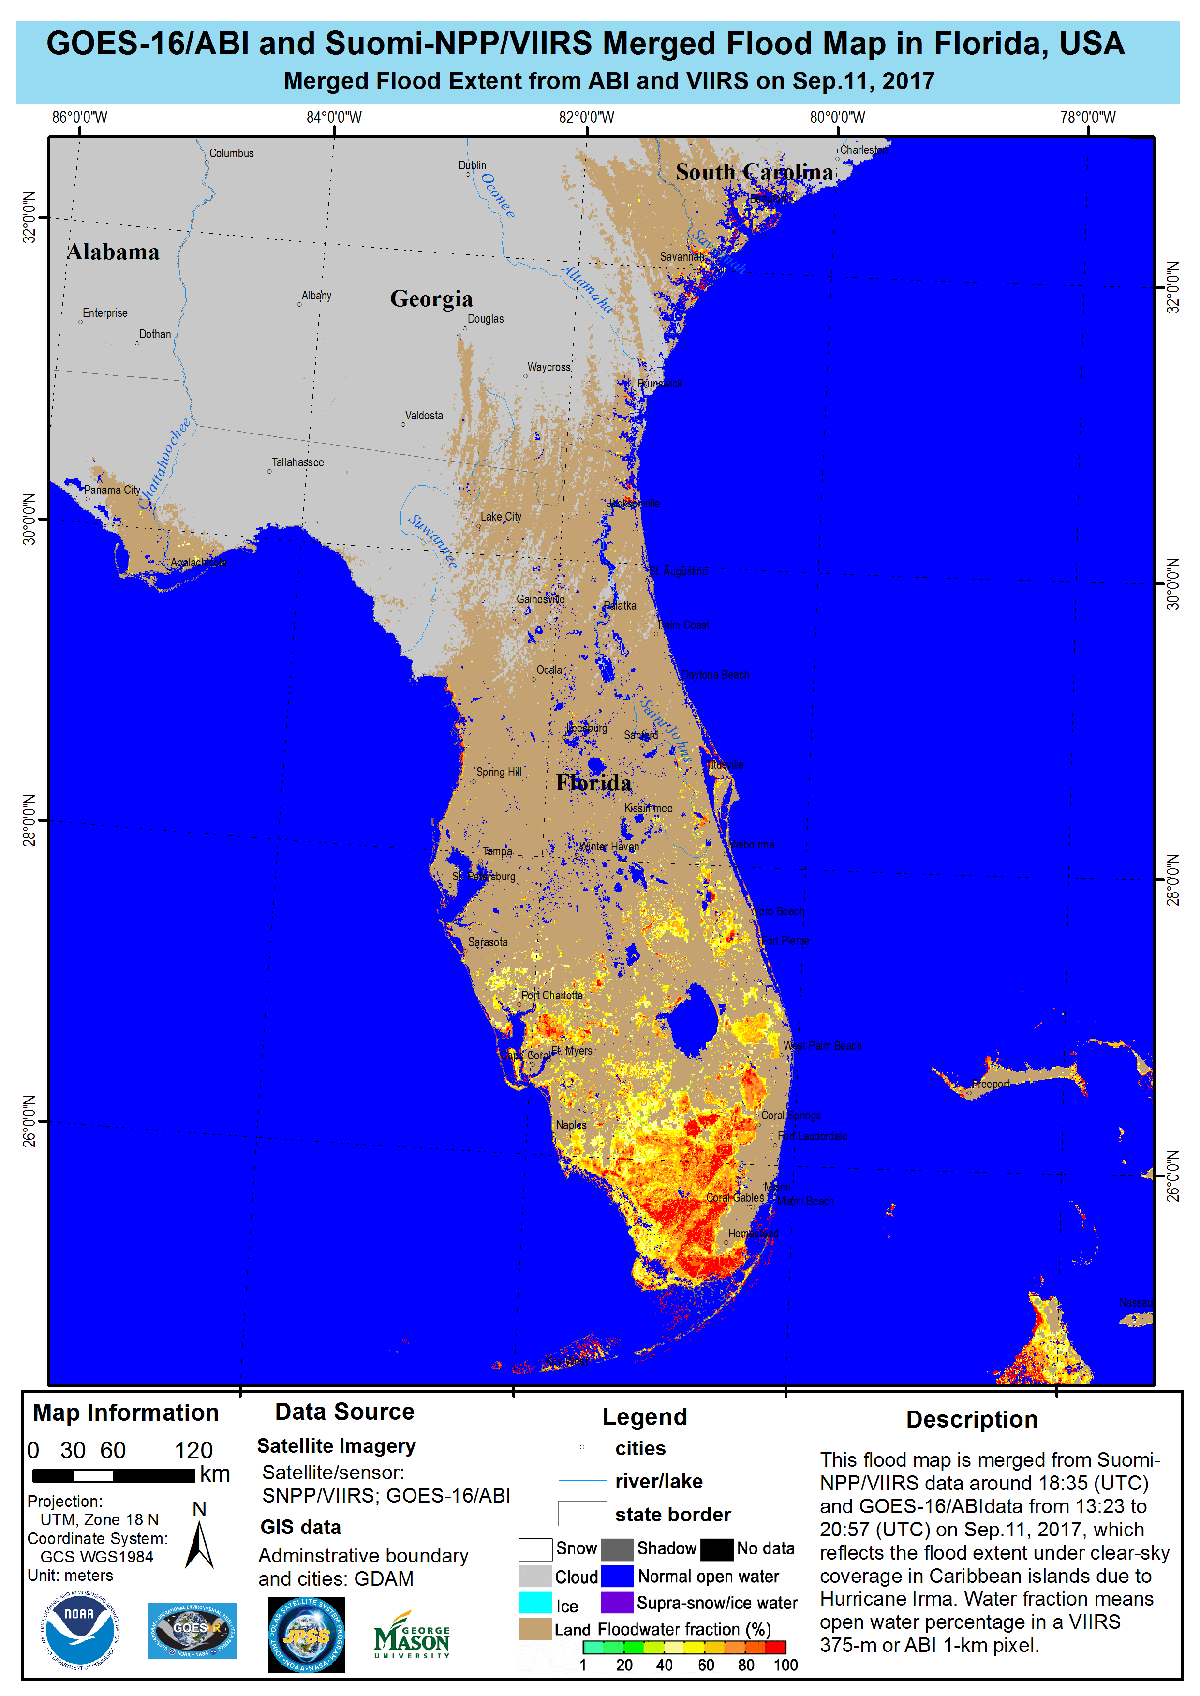 This flood map shows the impact of Hurricane Irma in Florida on Sept. 11, 2017. Colors correspond to the fraction of land covered by water, ranging from green (less than 30 percent) to red (more than 90 percent).